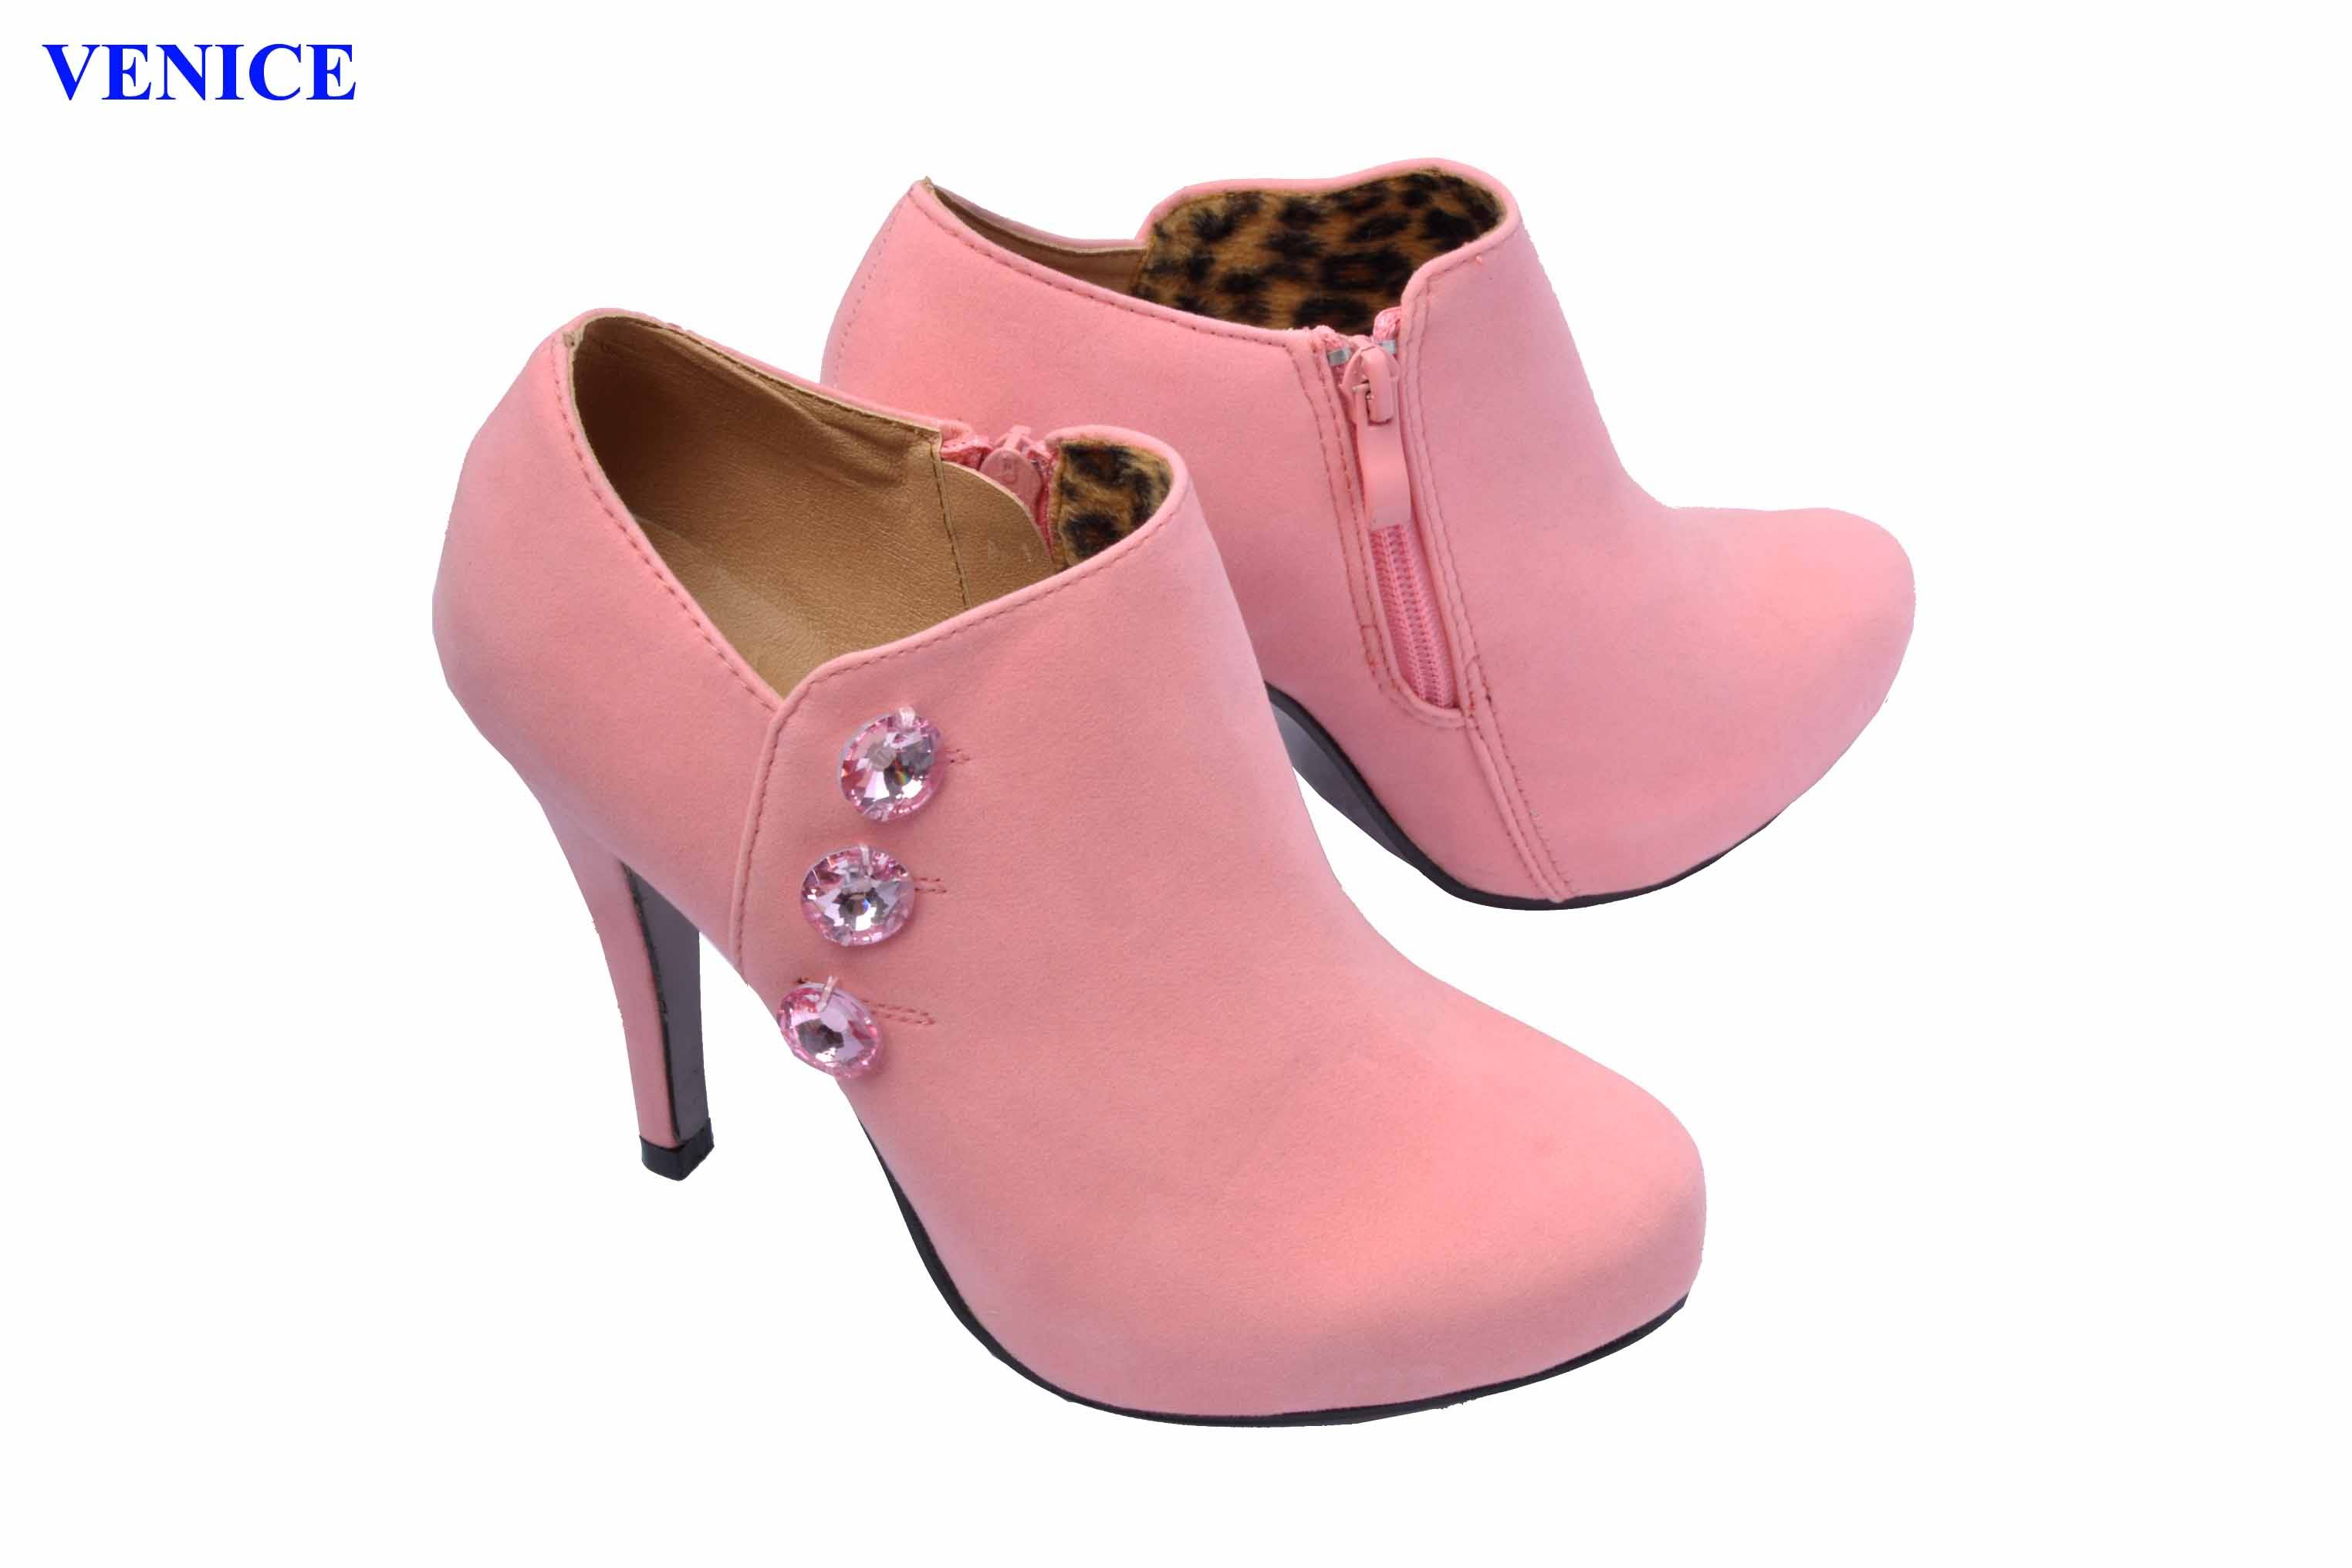 vben l6 new womens designer high heel shoe boots ebay